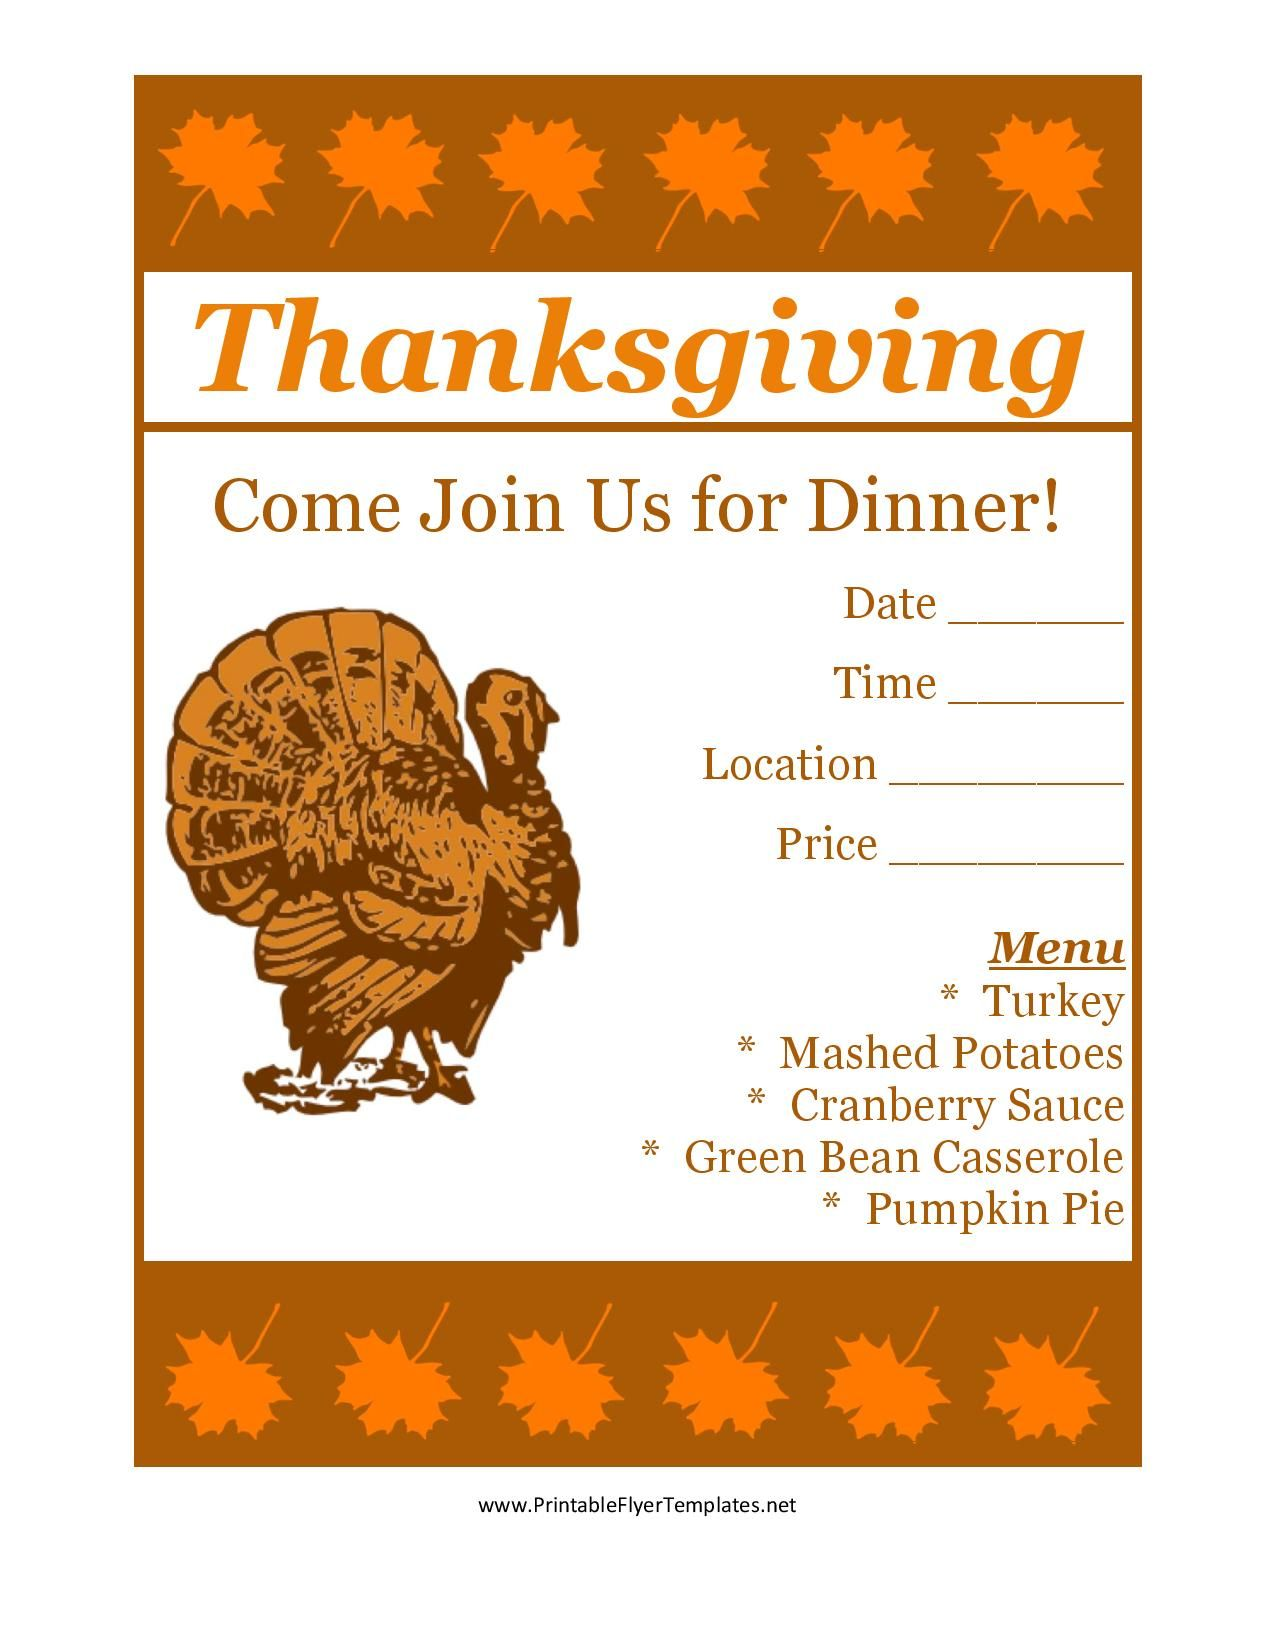 Free Printable Thanksgiving Flyer Invintation Template